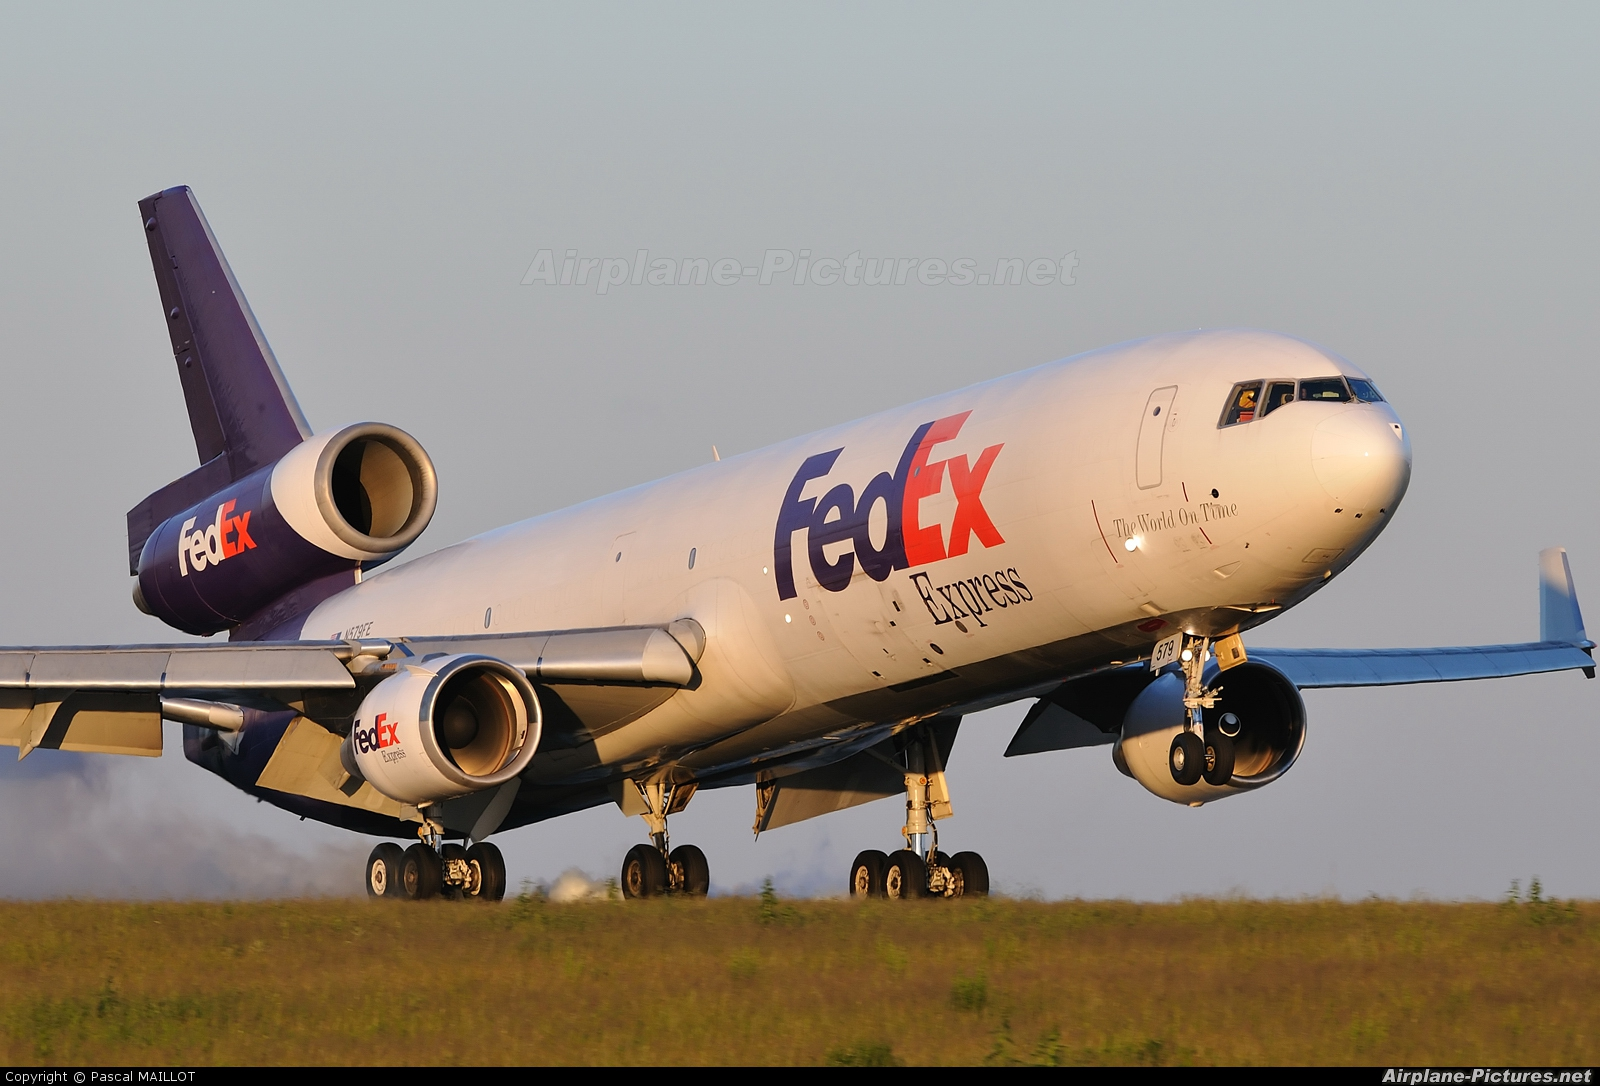 The best FedEx Federal Express Photos | Airplane-Pictures.net